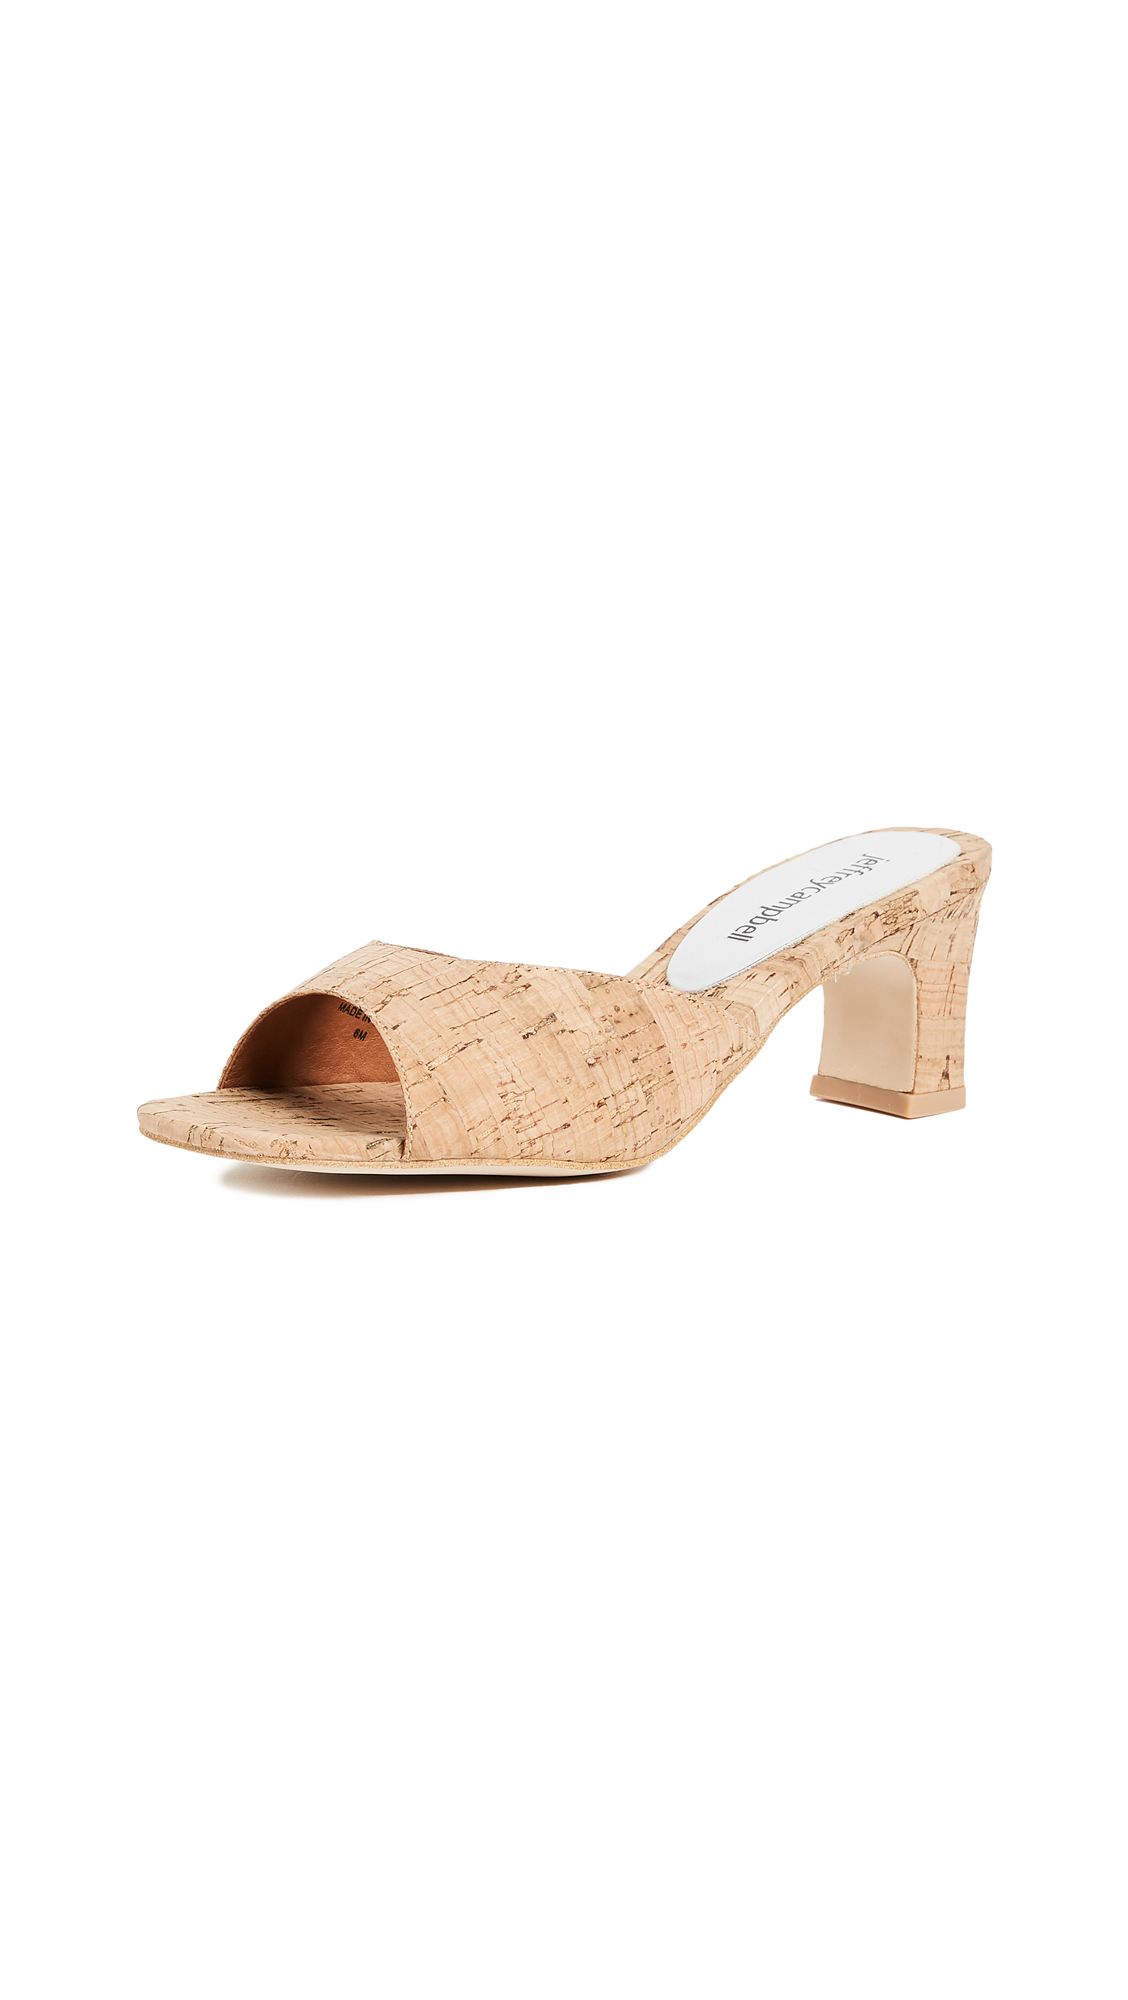 Jeffrey Campbell Honey Slides - Cork